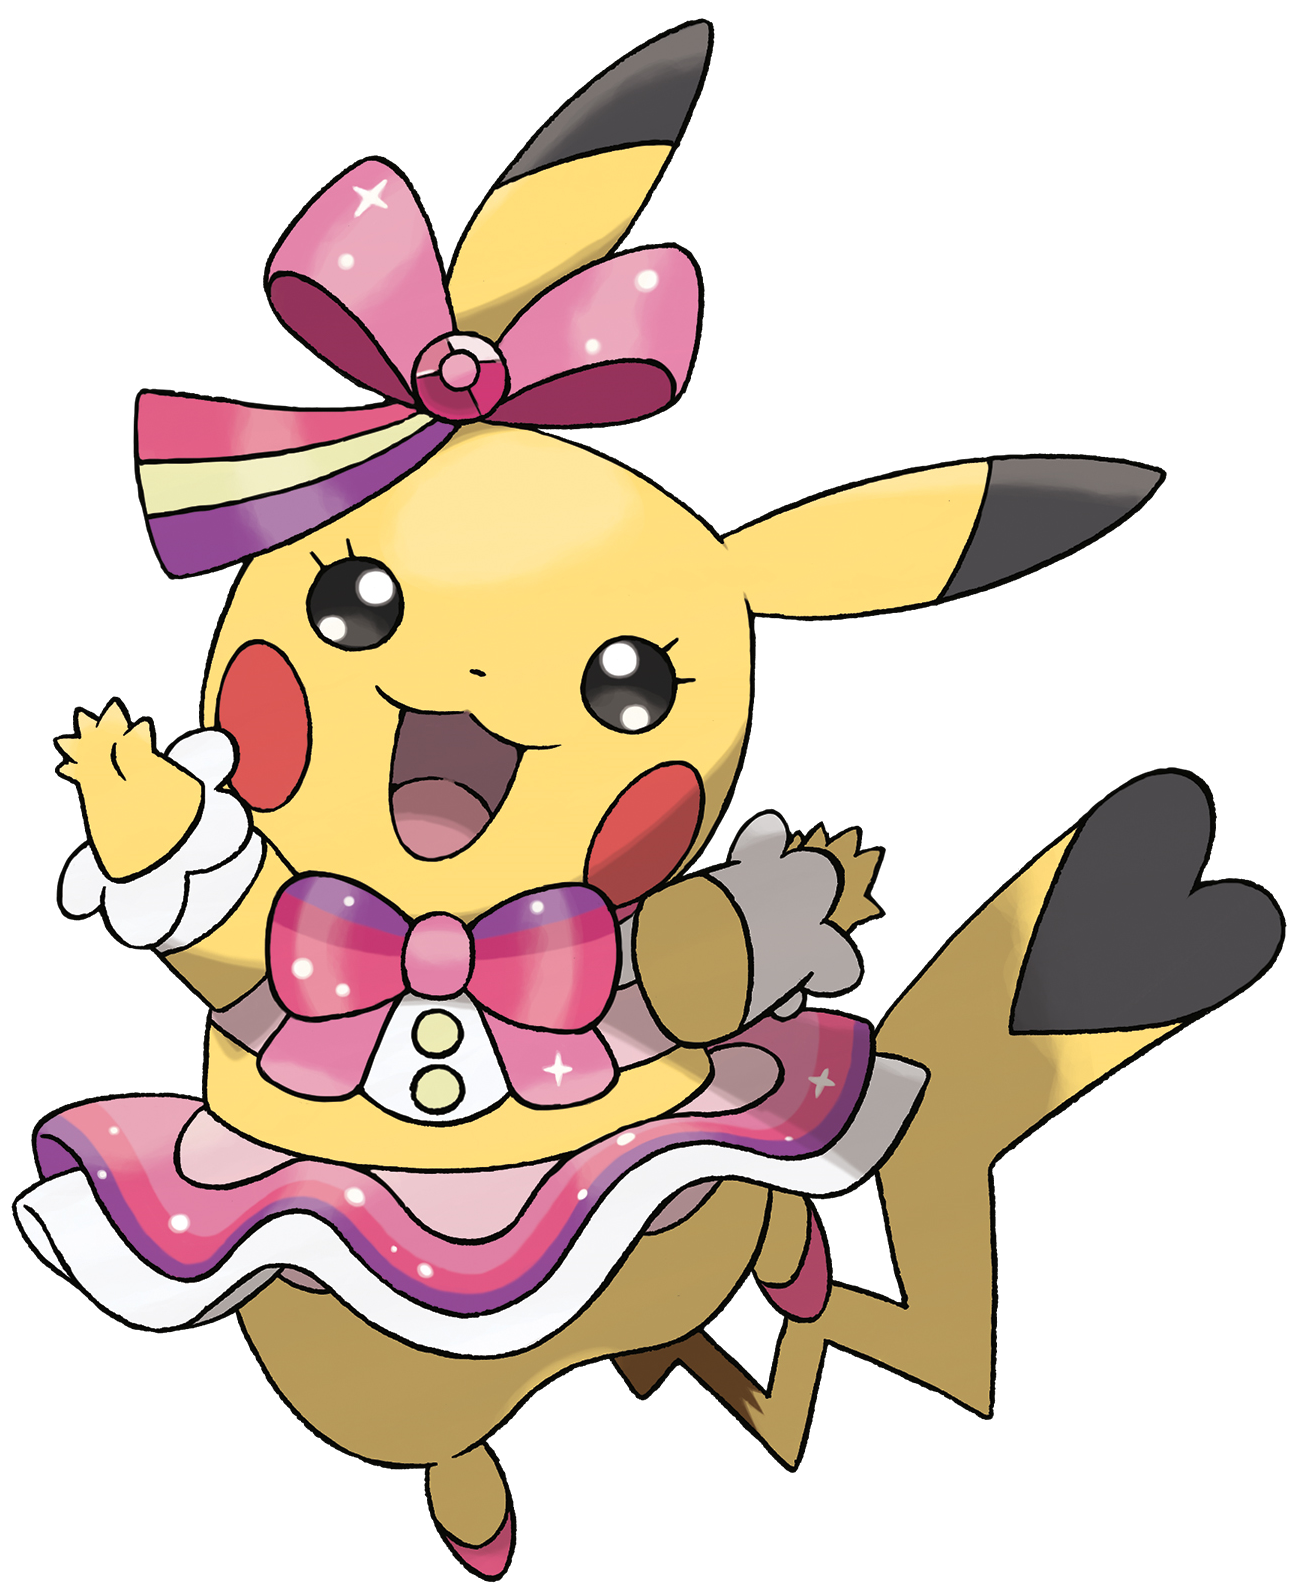 Hot or Not? Star-pikachu